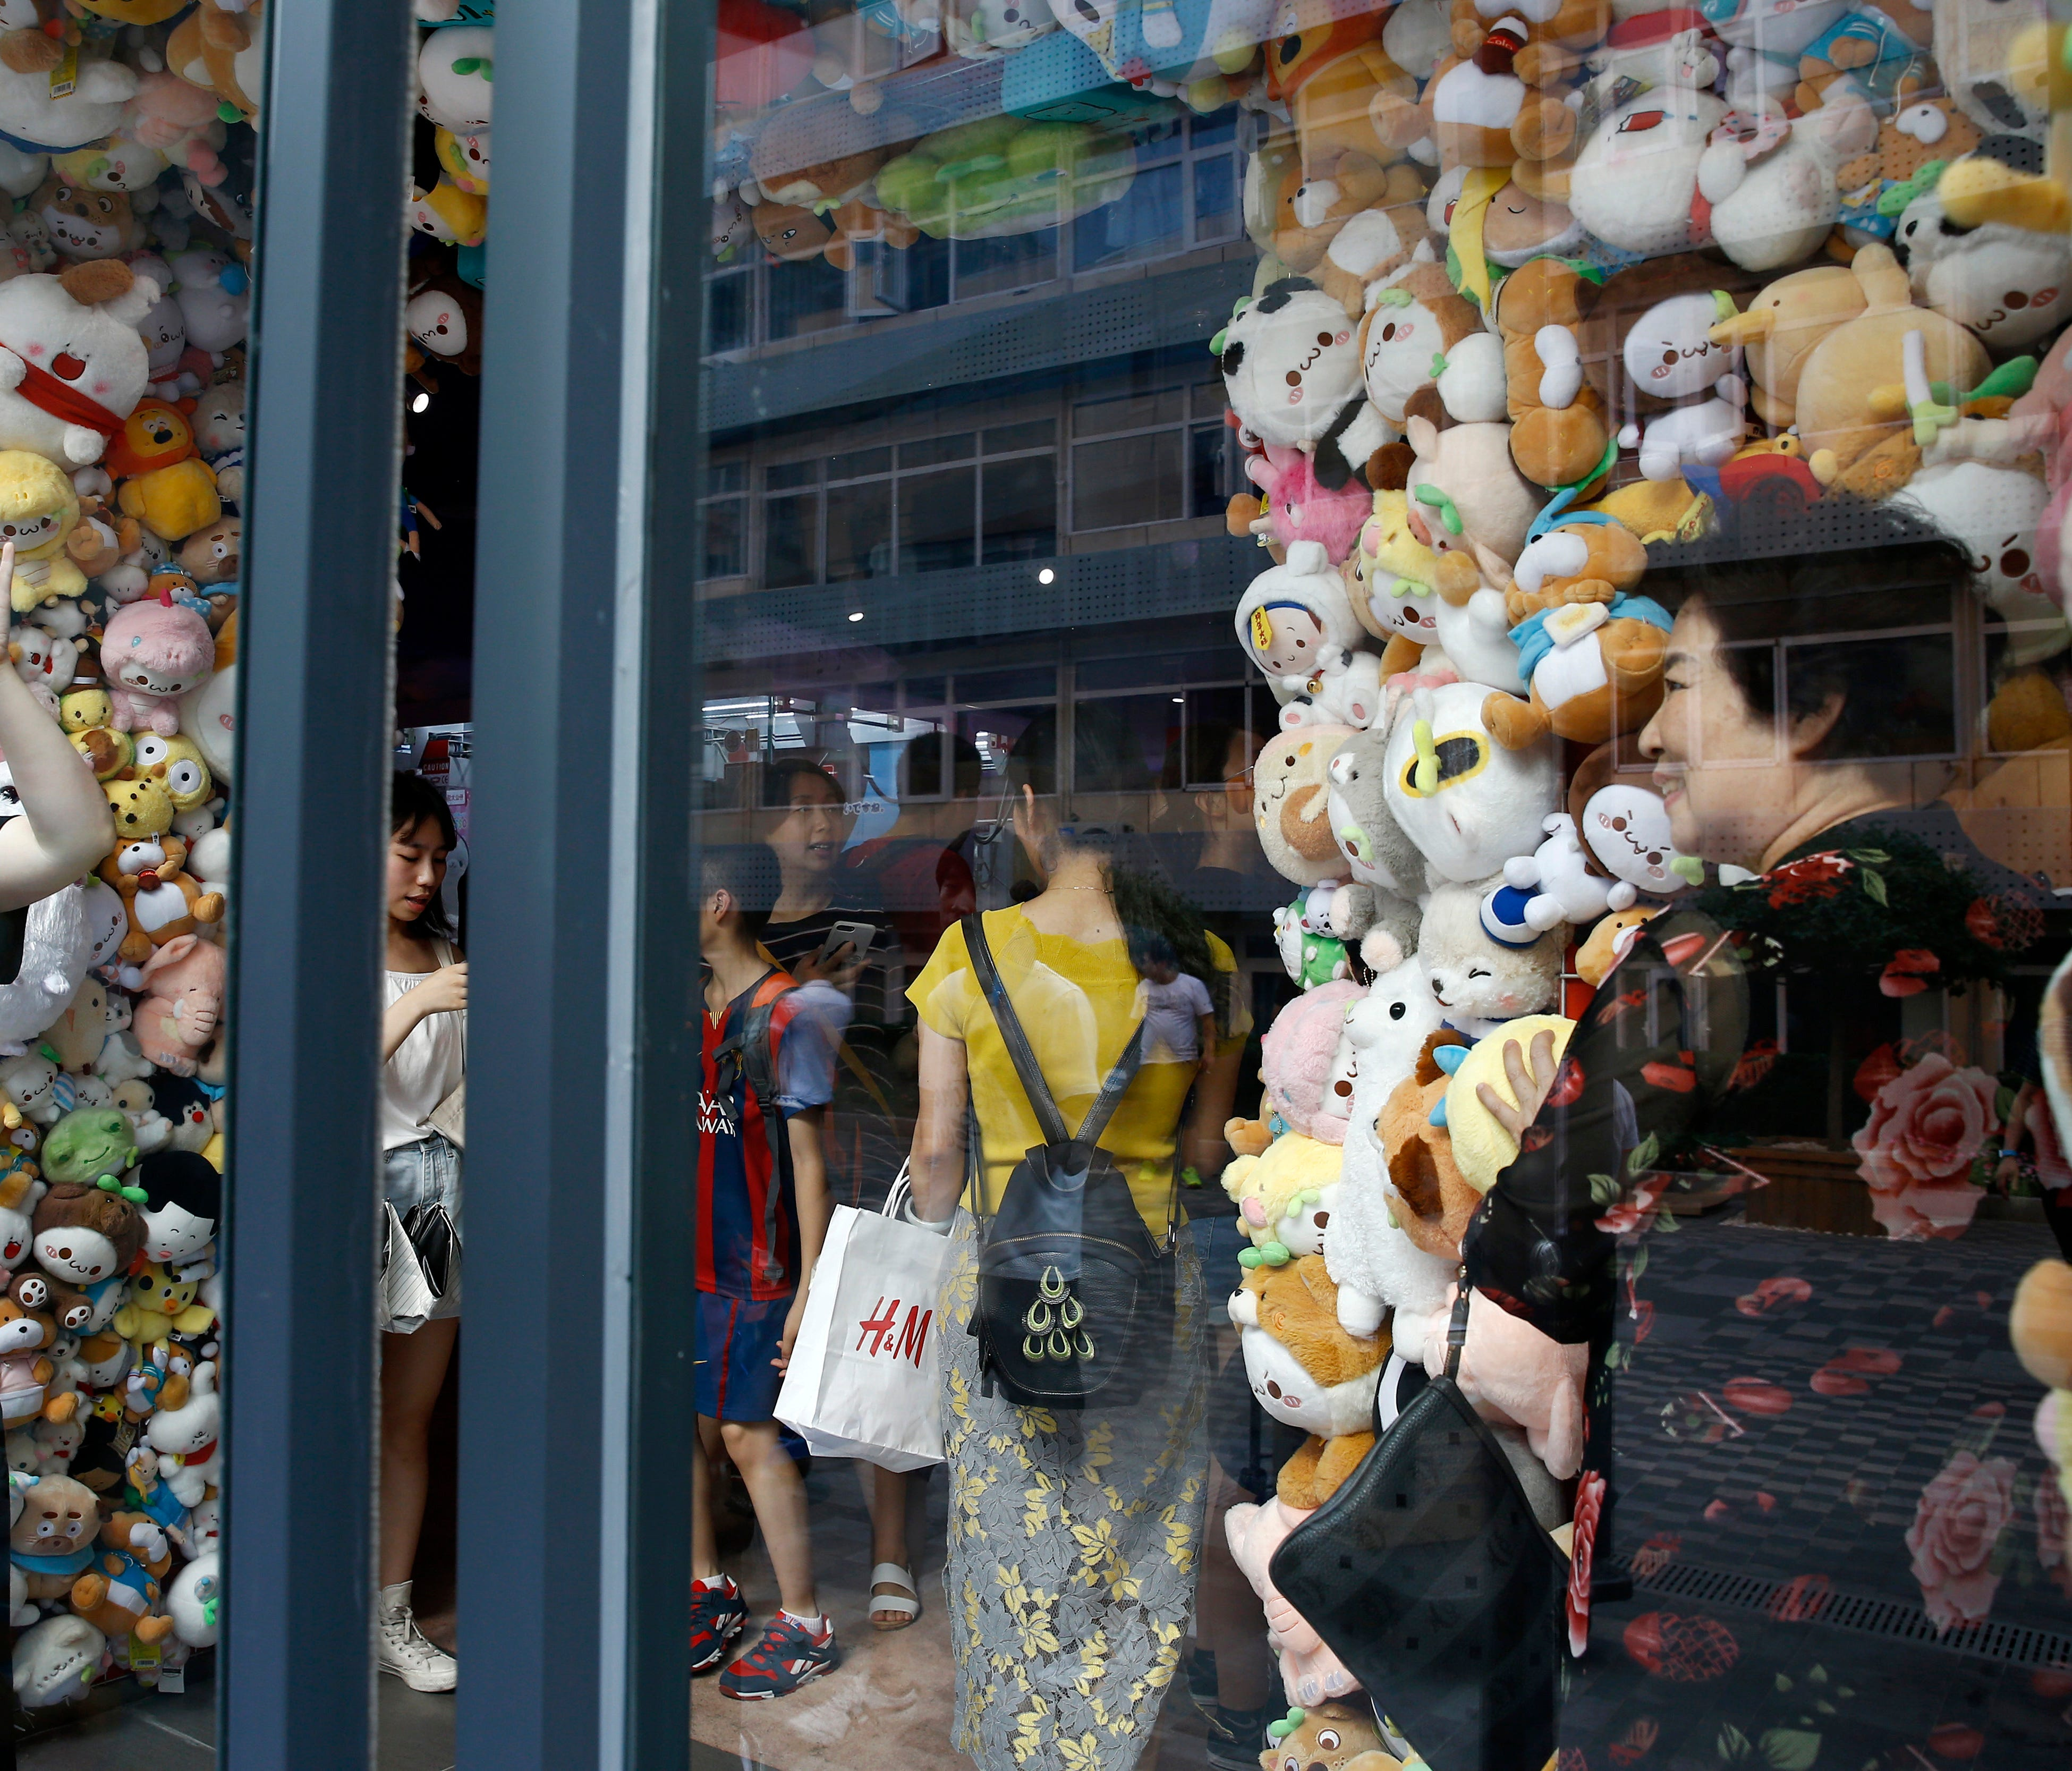 In this Sunday, July 15, 2018, photo, women take souvenir photos with soft toys on display at an arcade games shop in Beijing. China's economic growth slowed in the quarter ending in June, adding to challenges for Beijing amid a mounting tariff battl